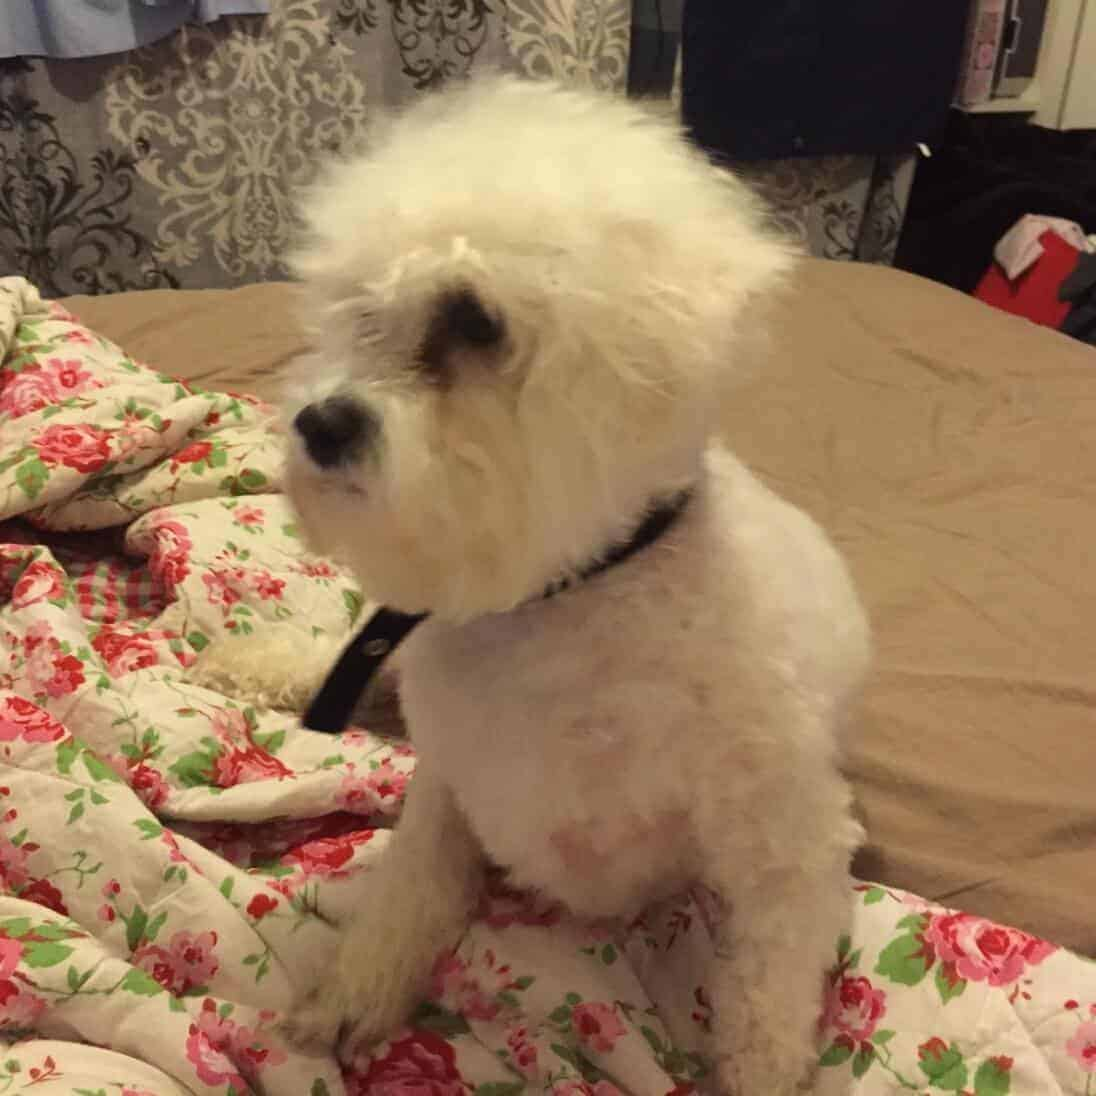 bichon frise in the shower